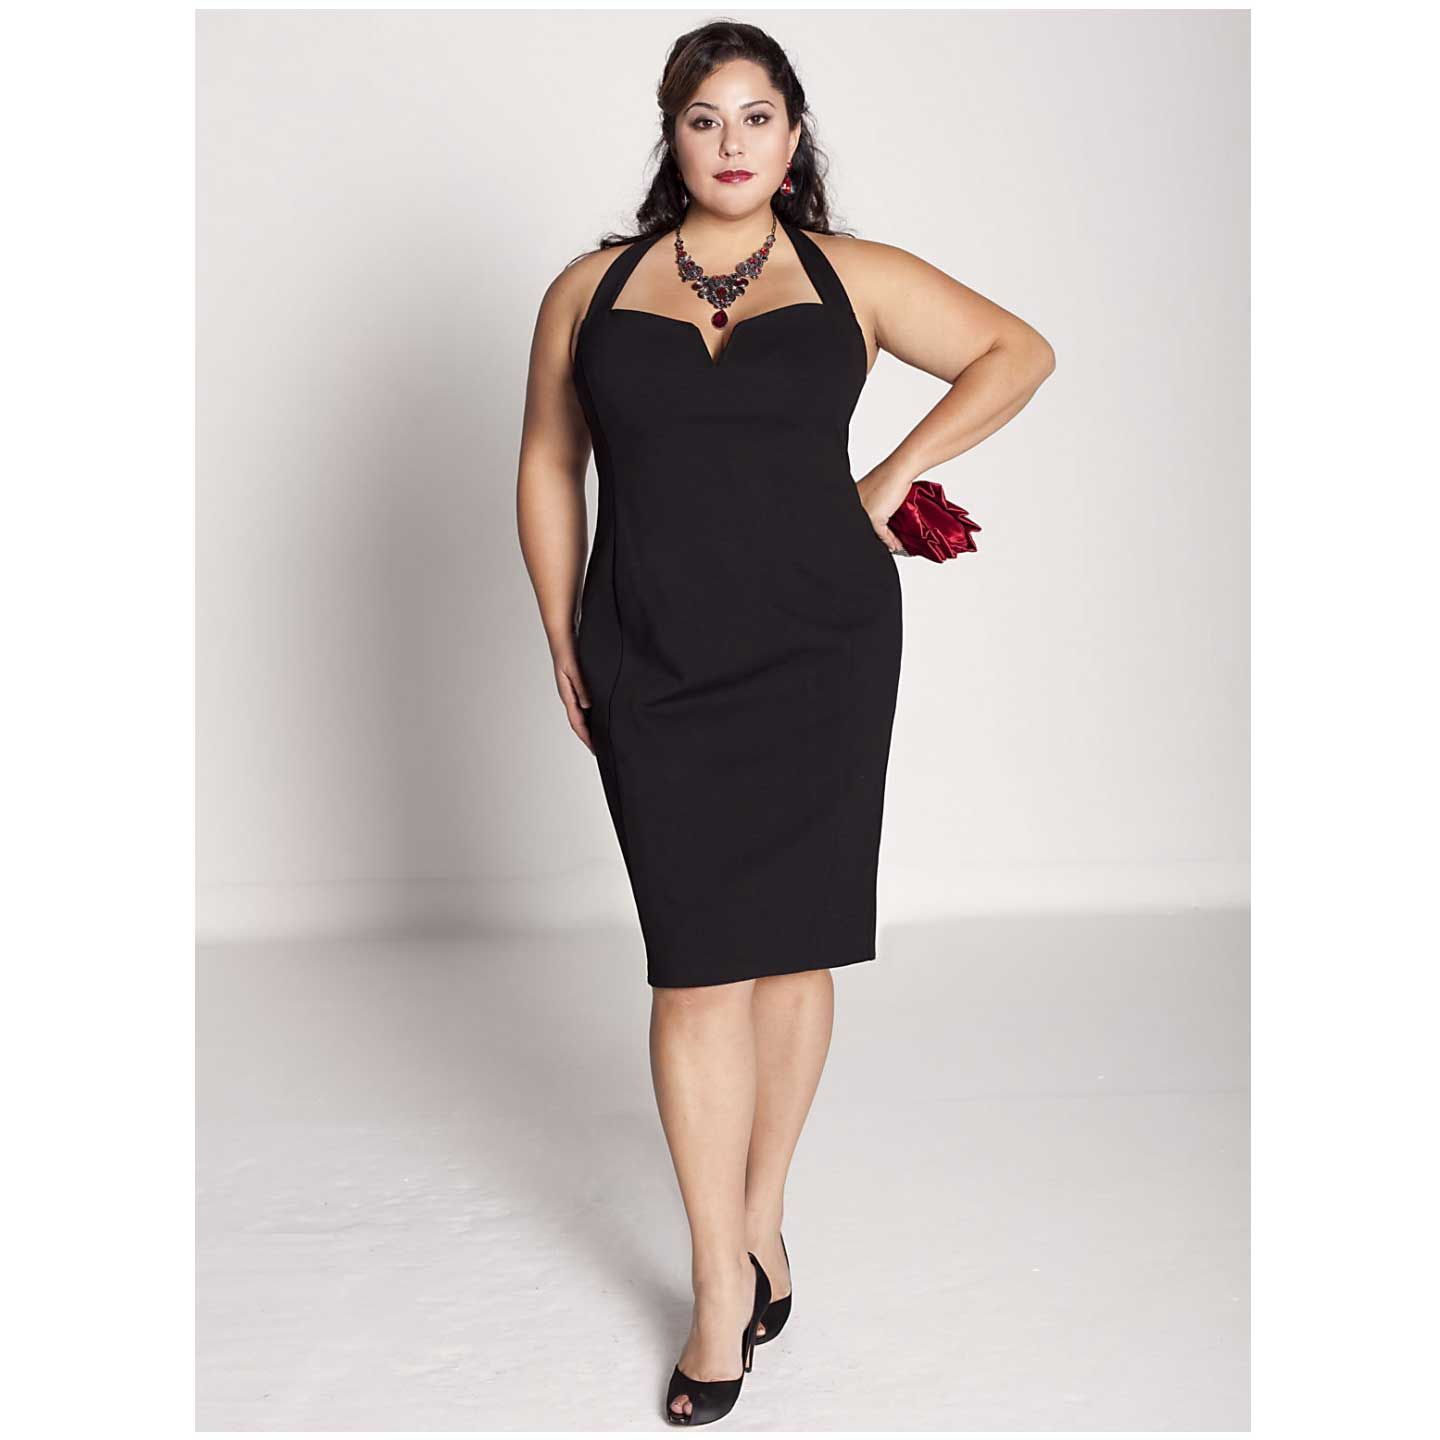 Plus Size Party Dresses | Cheap Plus Size Cocktail Dresses That ...